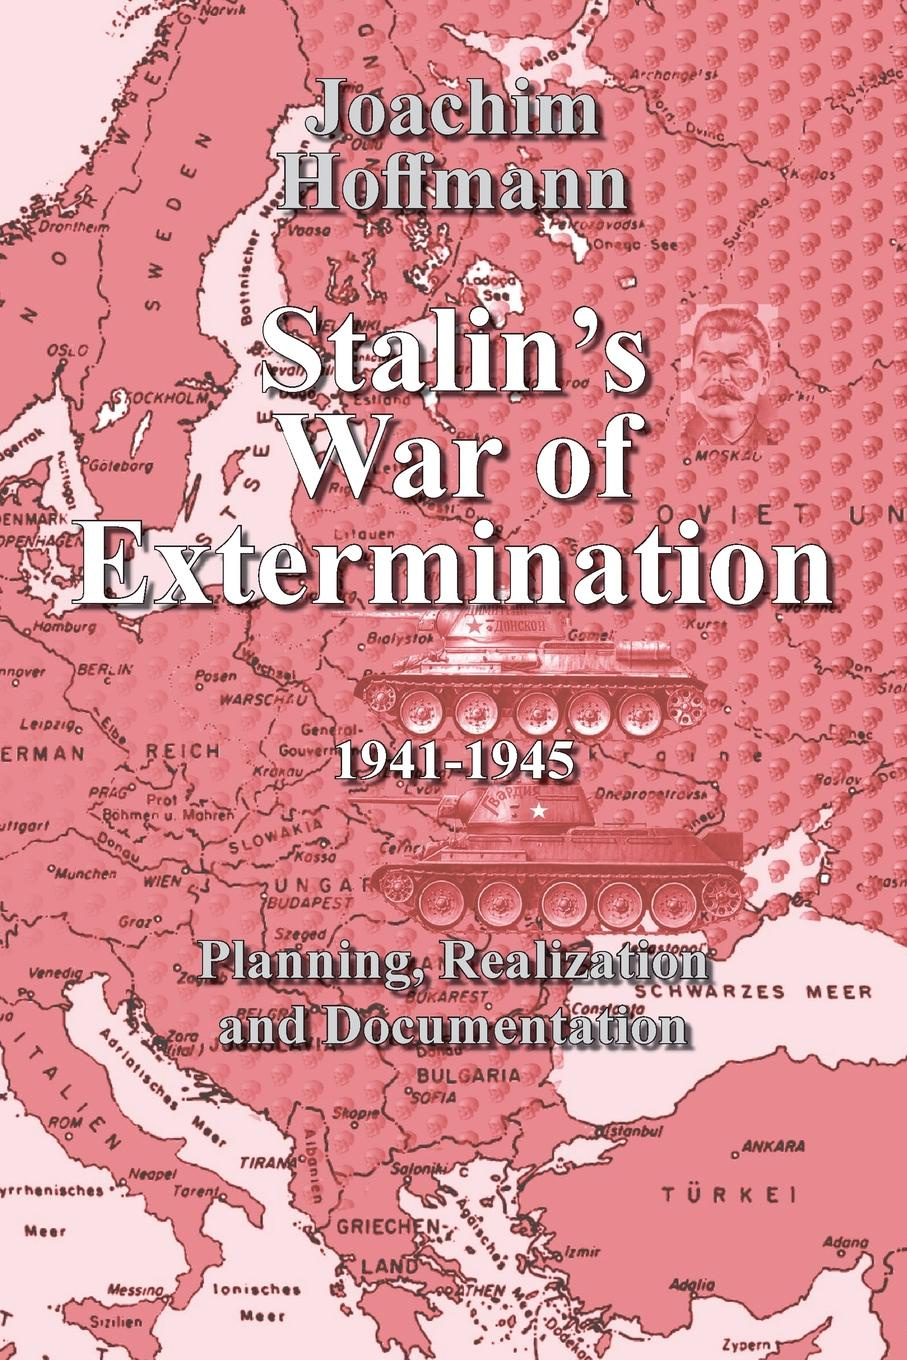 Joachim Hoffmann Stalin.s War of Extermination 1941-1945. Planning, Realization and Documentation max klim the epoch of stalin joseph stalin the way to power page 9